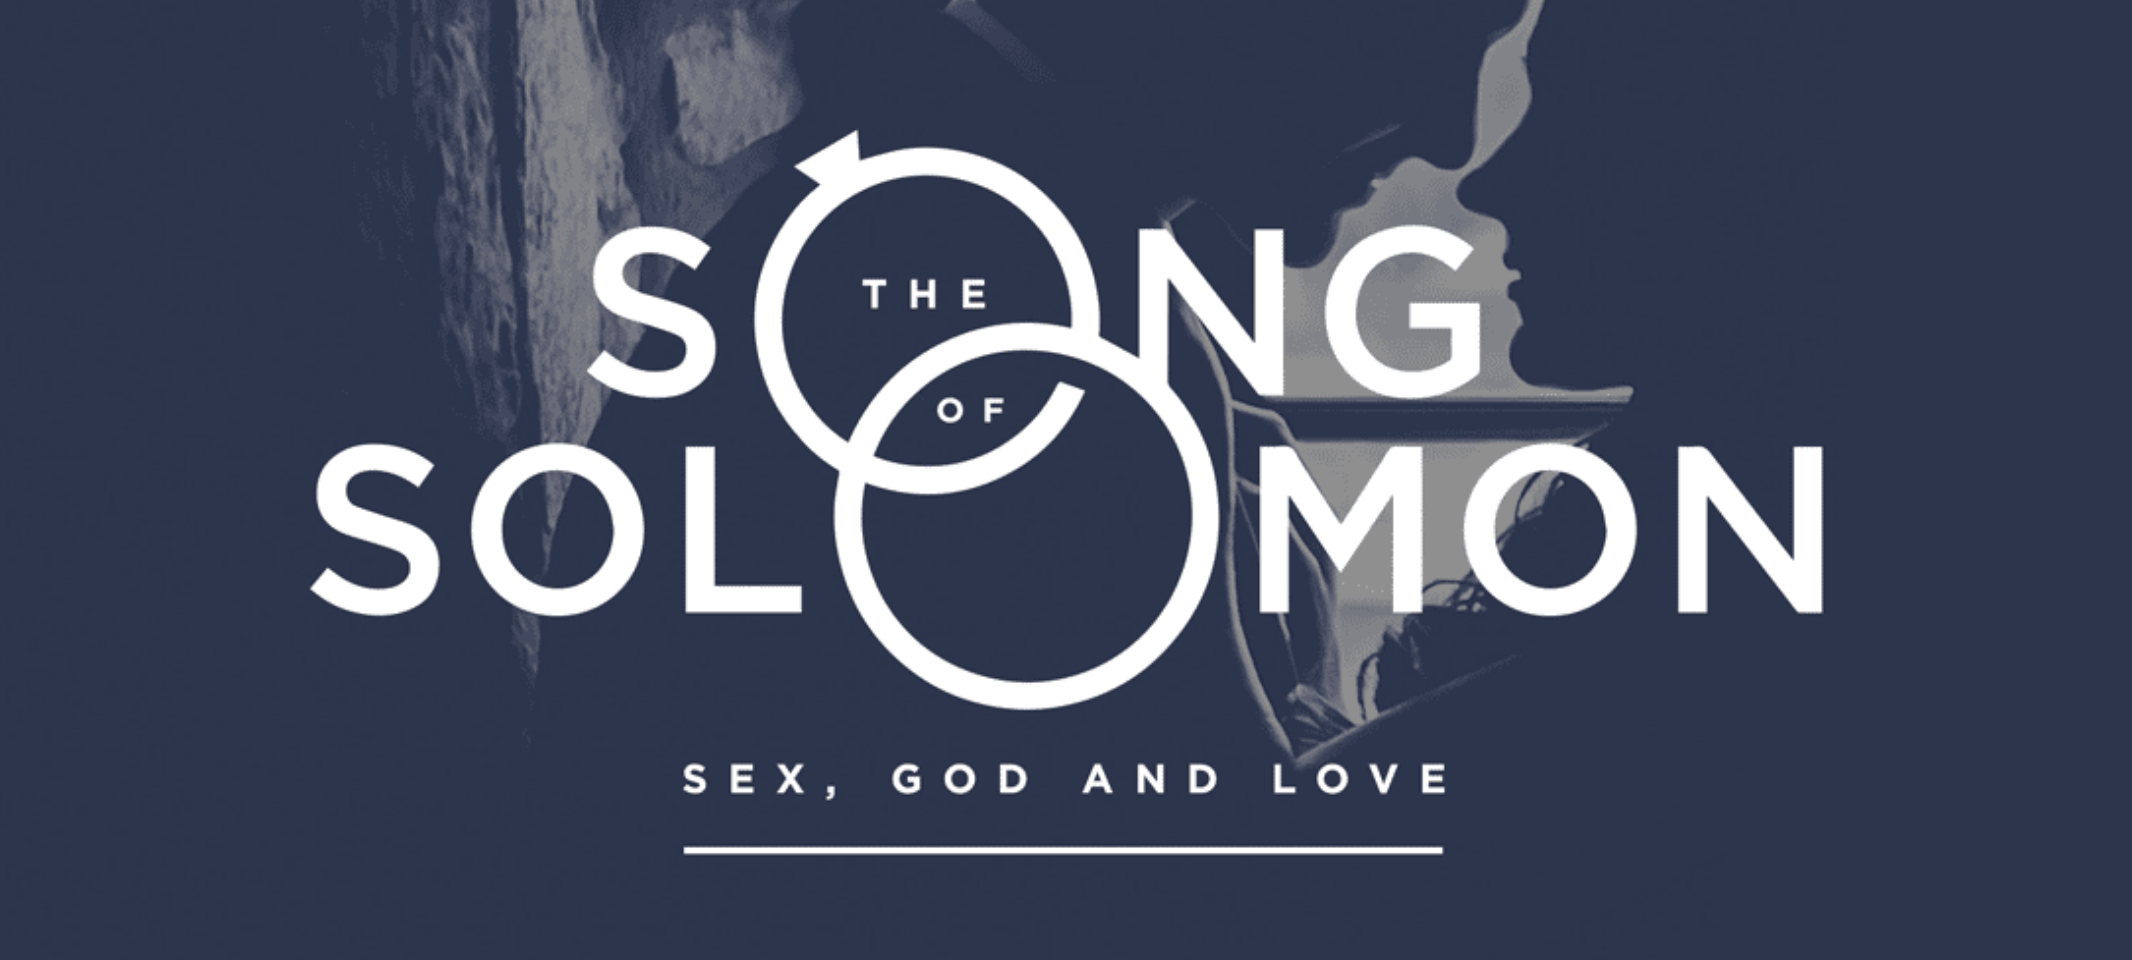 Song of Solomon Part 3